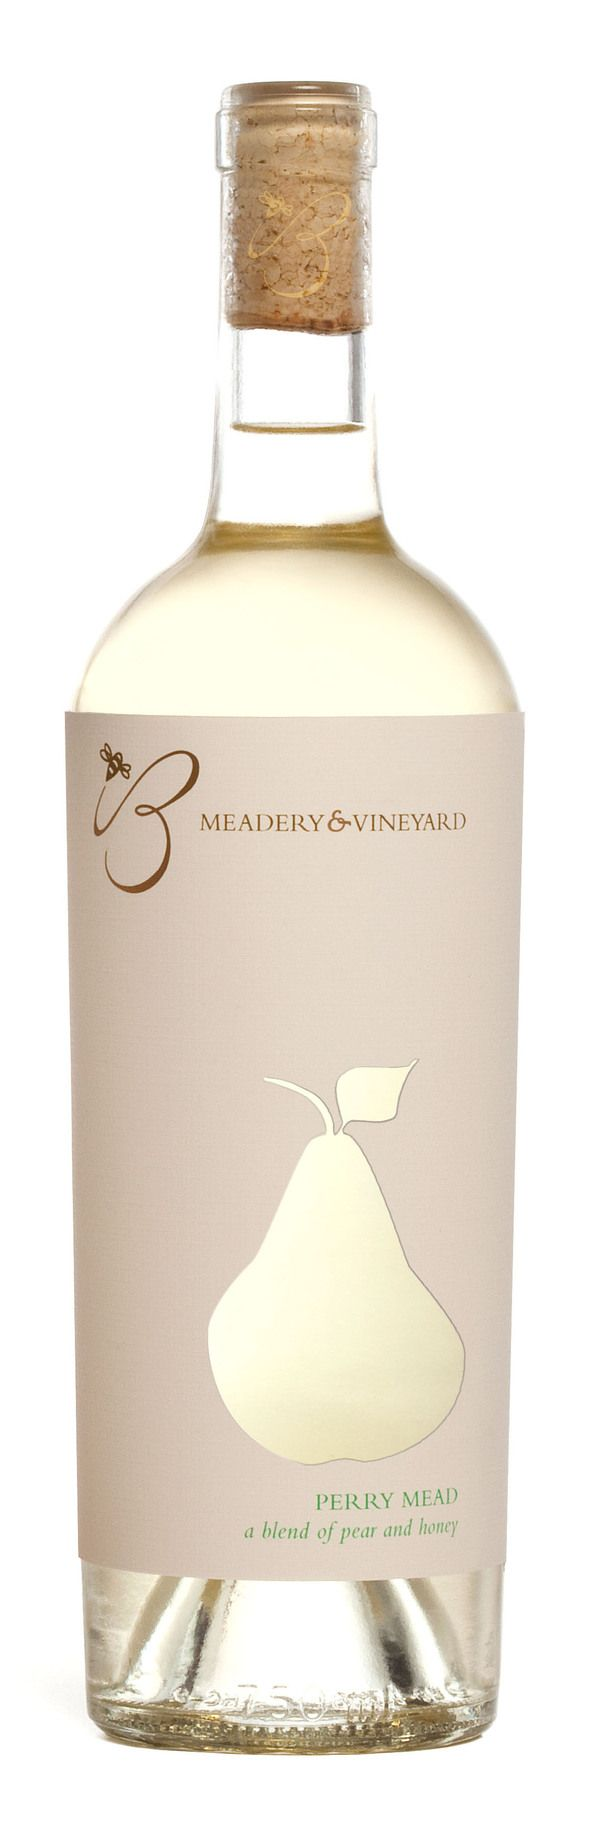 B Meadery Vineyard.   Lovely always sells just one of the great bottles in the set.